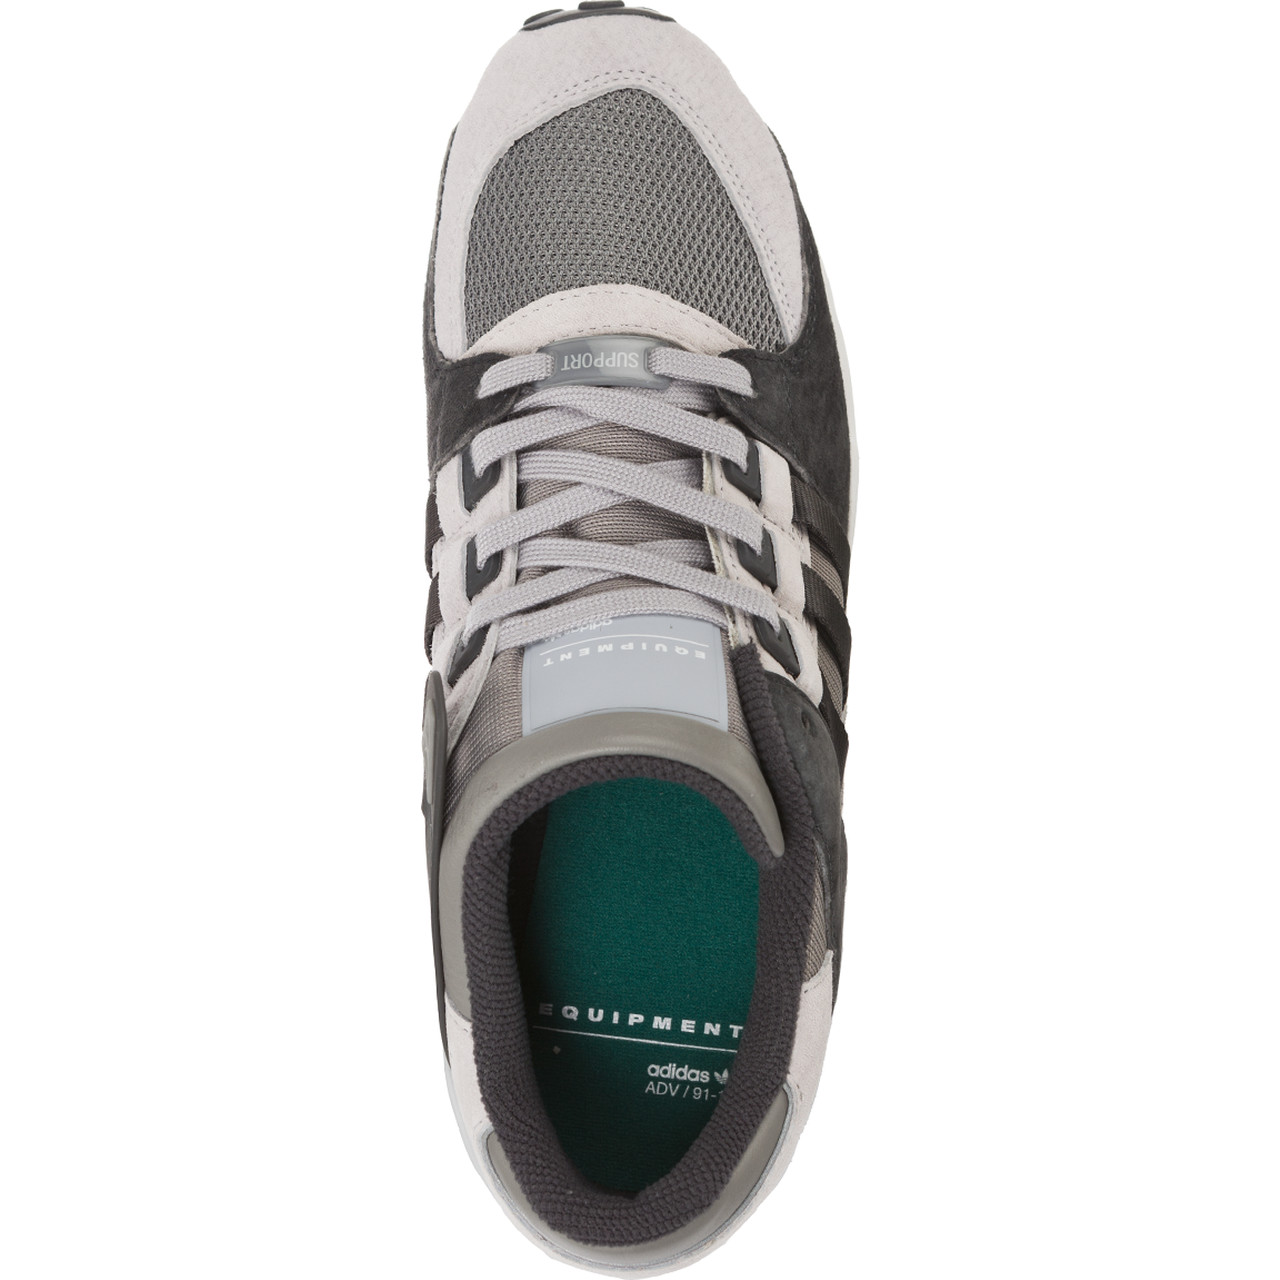 ¡Buty Adidas EQT Support creer! RF 317 W puedo creer! Support 3de87a